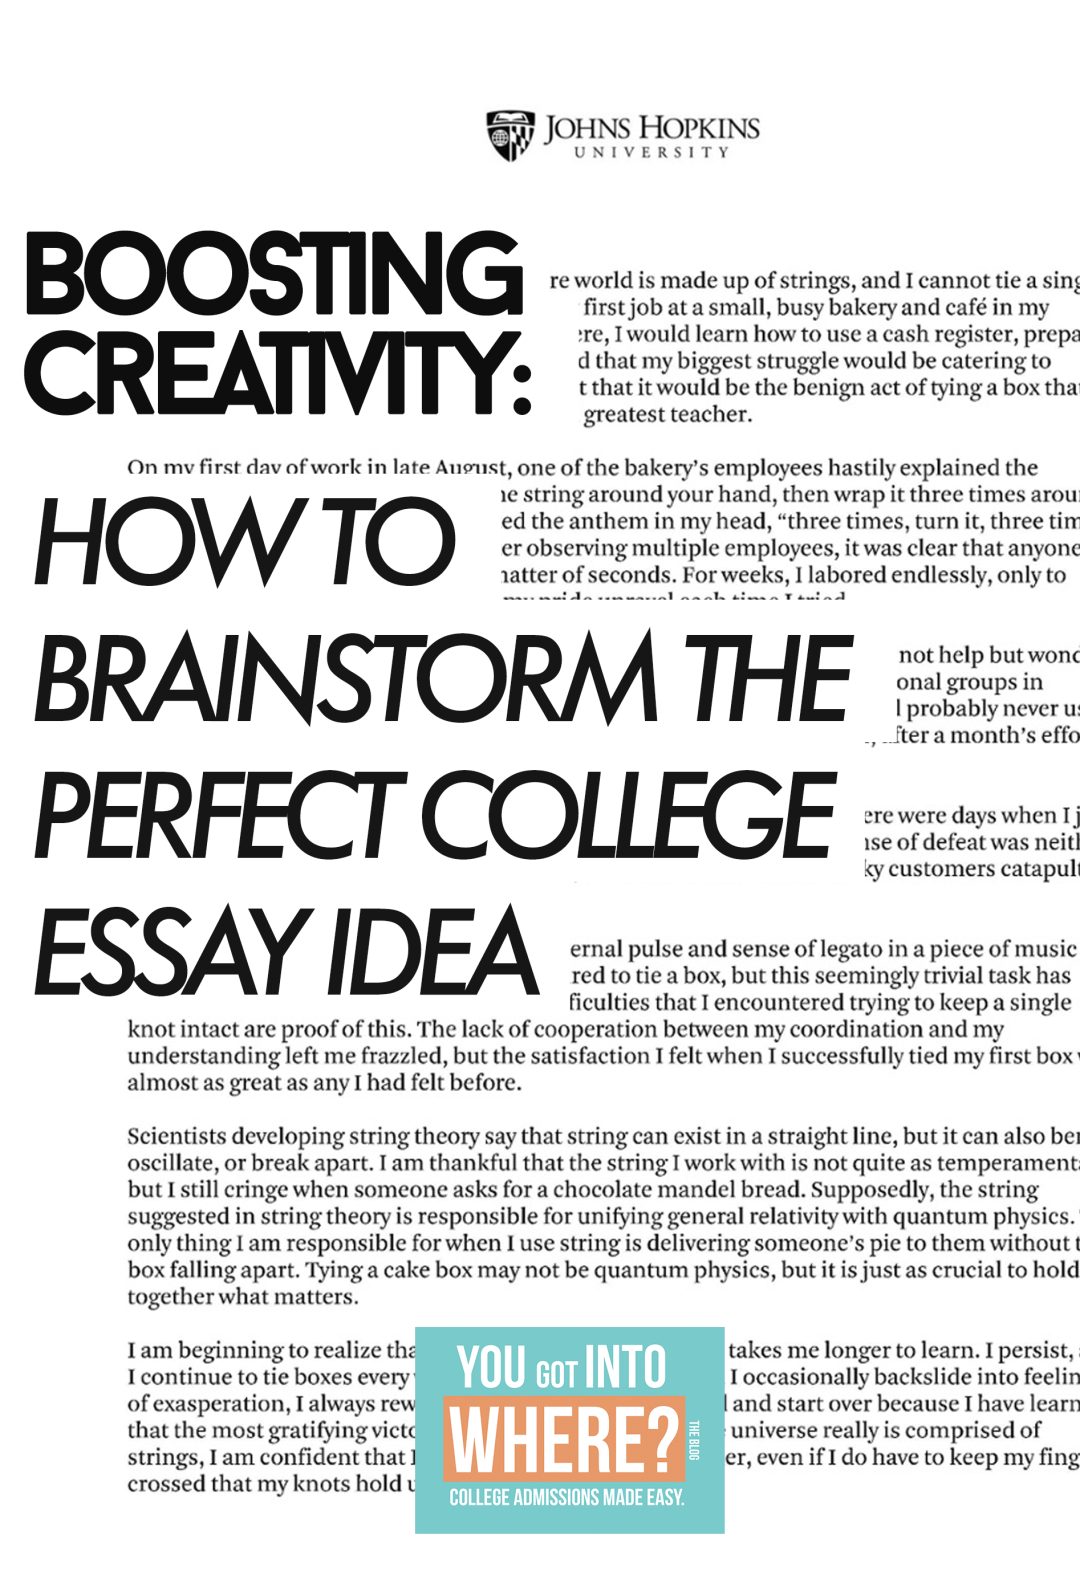 my first day of high school essay essays in english our last first  essays supplements you got into where 5 effective steps to brainstorm the perfect college essay